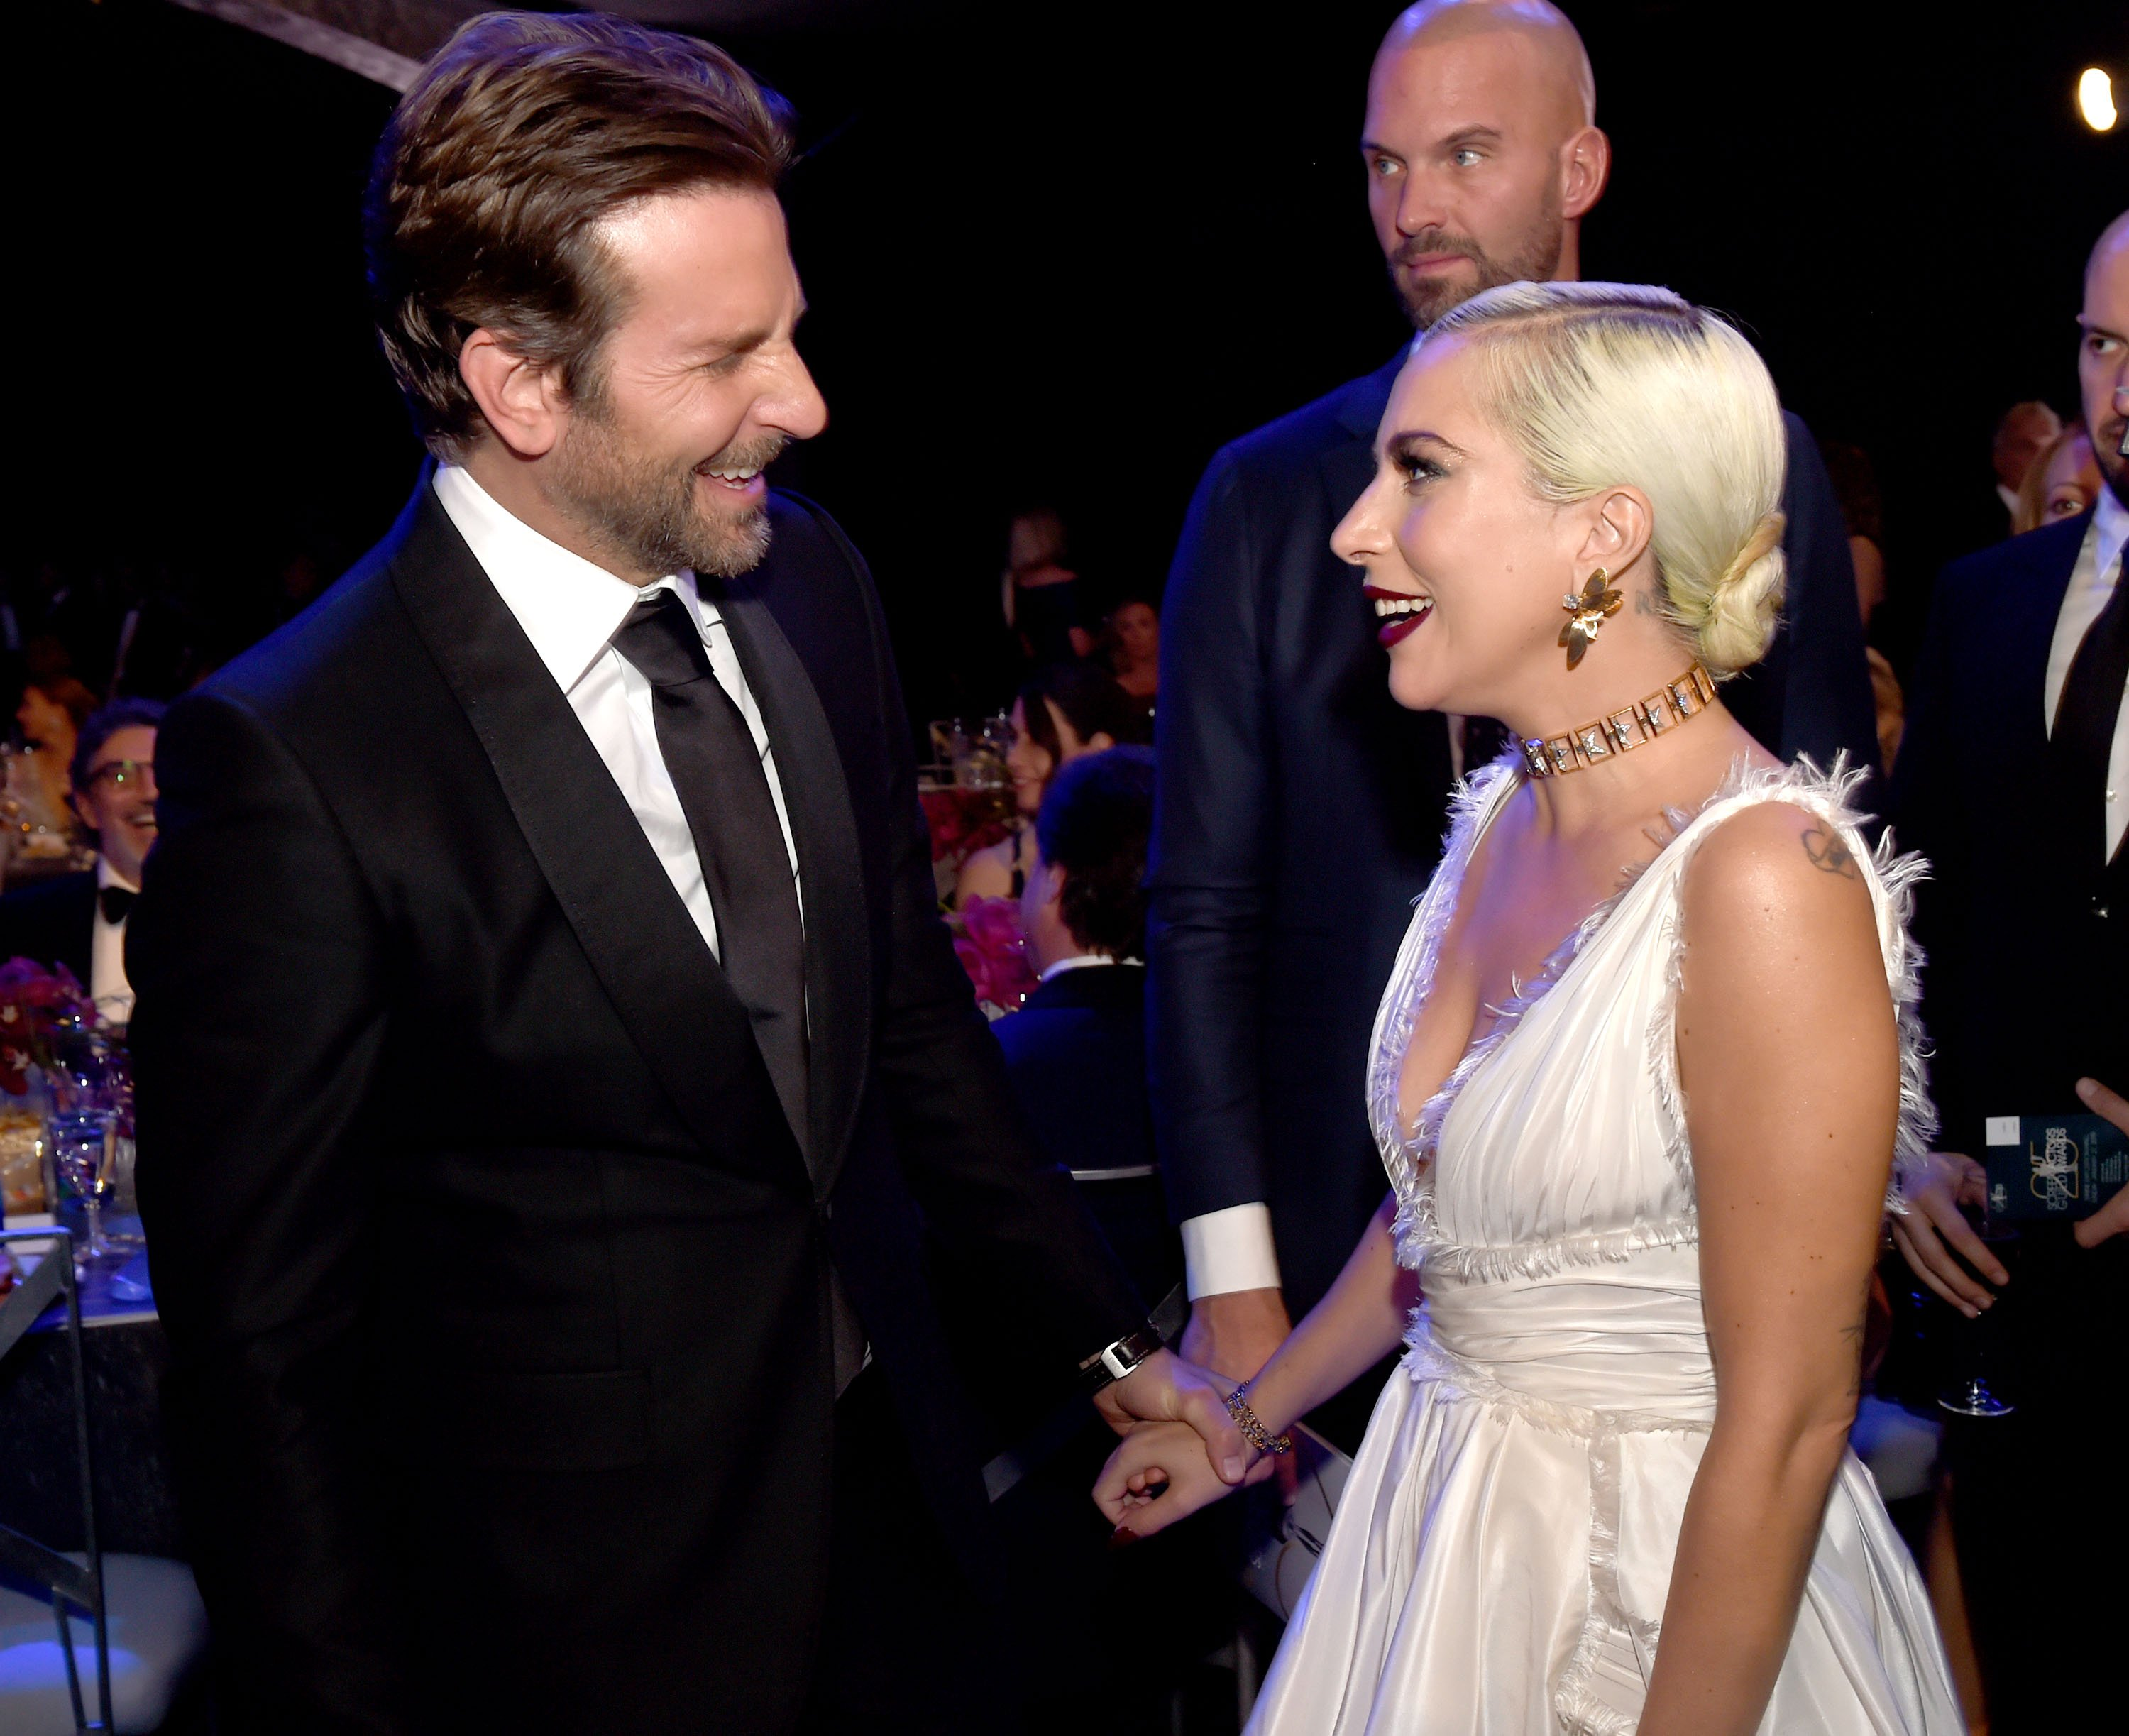 Lady Gaga und Bradley Cooper am 27. Januar 2019 in Los Angeles, Kalifornien | Quelle: Getty Images